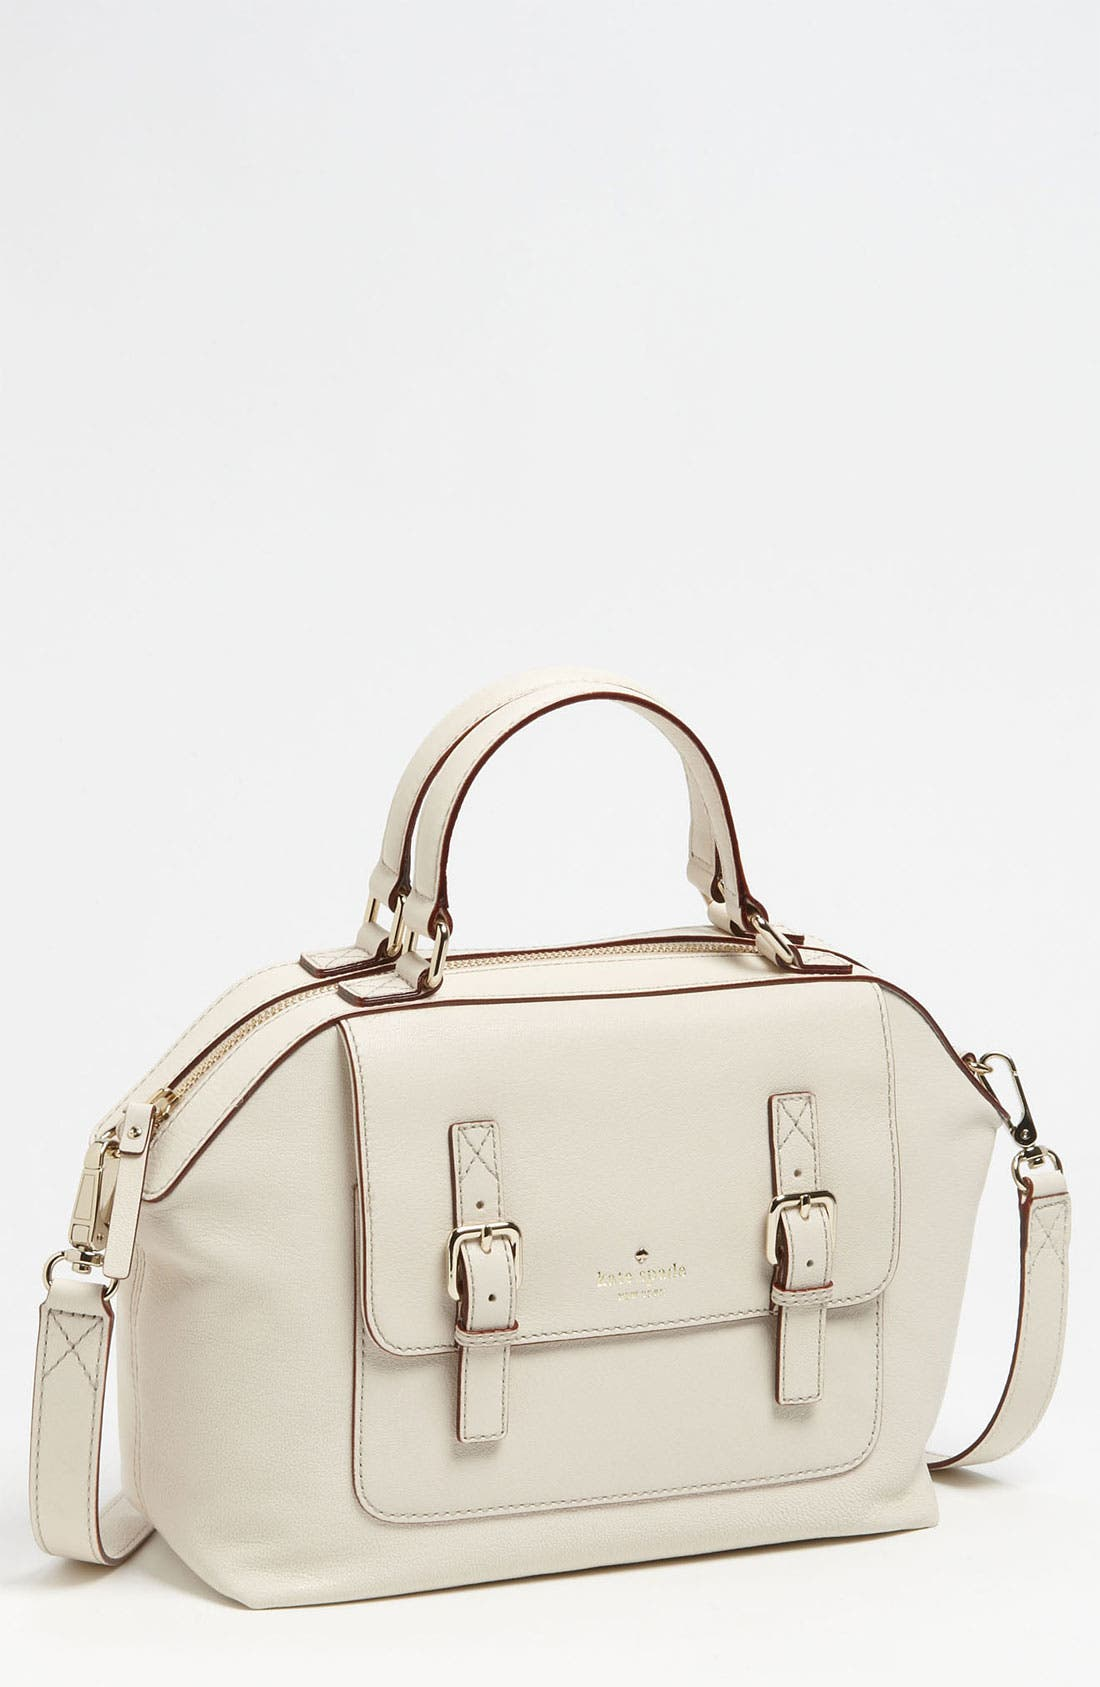 Main Image - kate spade new york 'allen street - raquelle' satchel